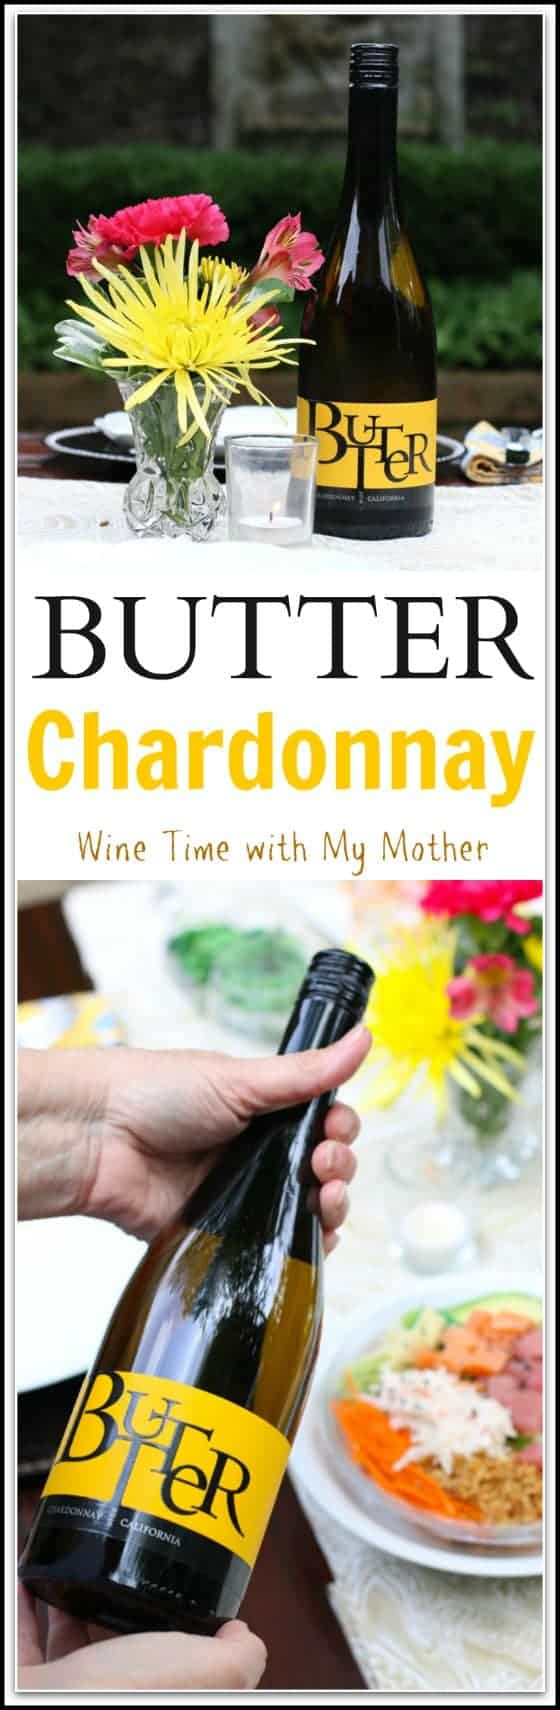 #ad I was a bit of a handful growing up and drove my poor mother crazy. Now that I am grown up, and my children are driving me crazy, I invite her over to vent over a glass of @JaMCellars Butter Chardonnay. #SpreadTheLove, #JaMPartner, #ButterChardonnay, #MothersDay